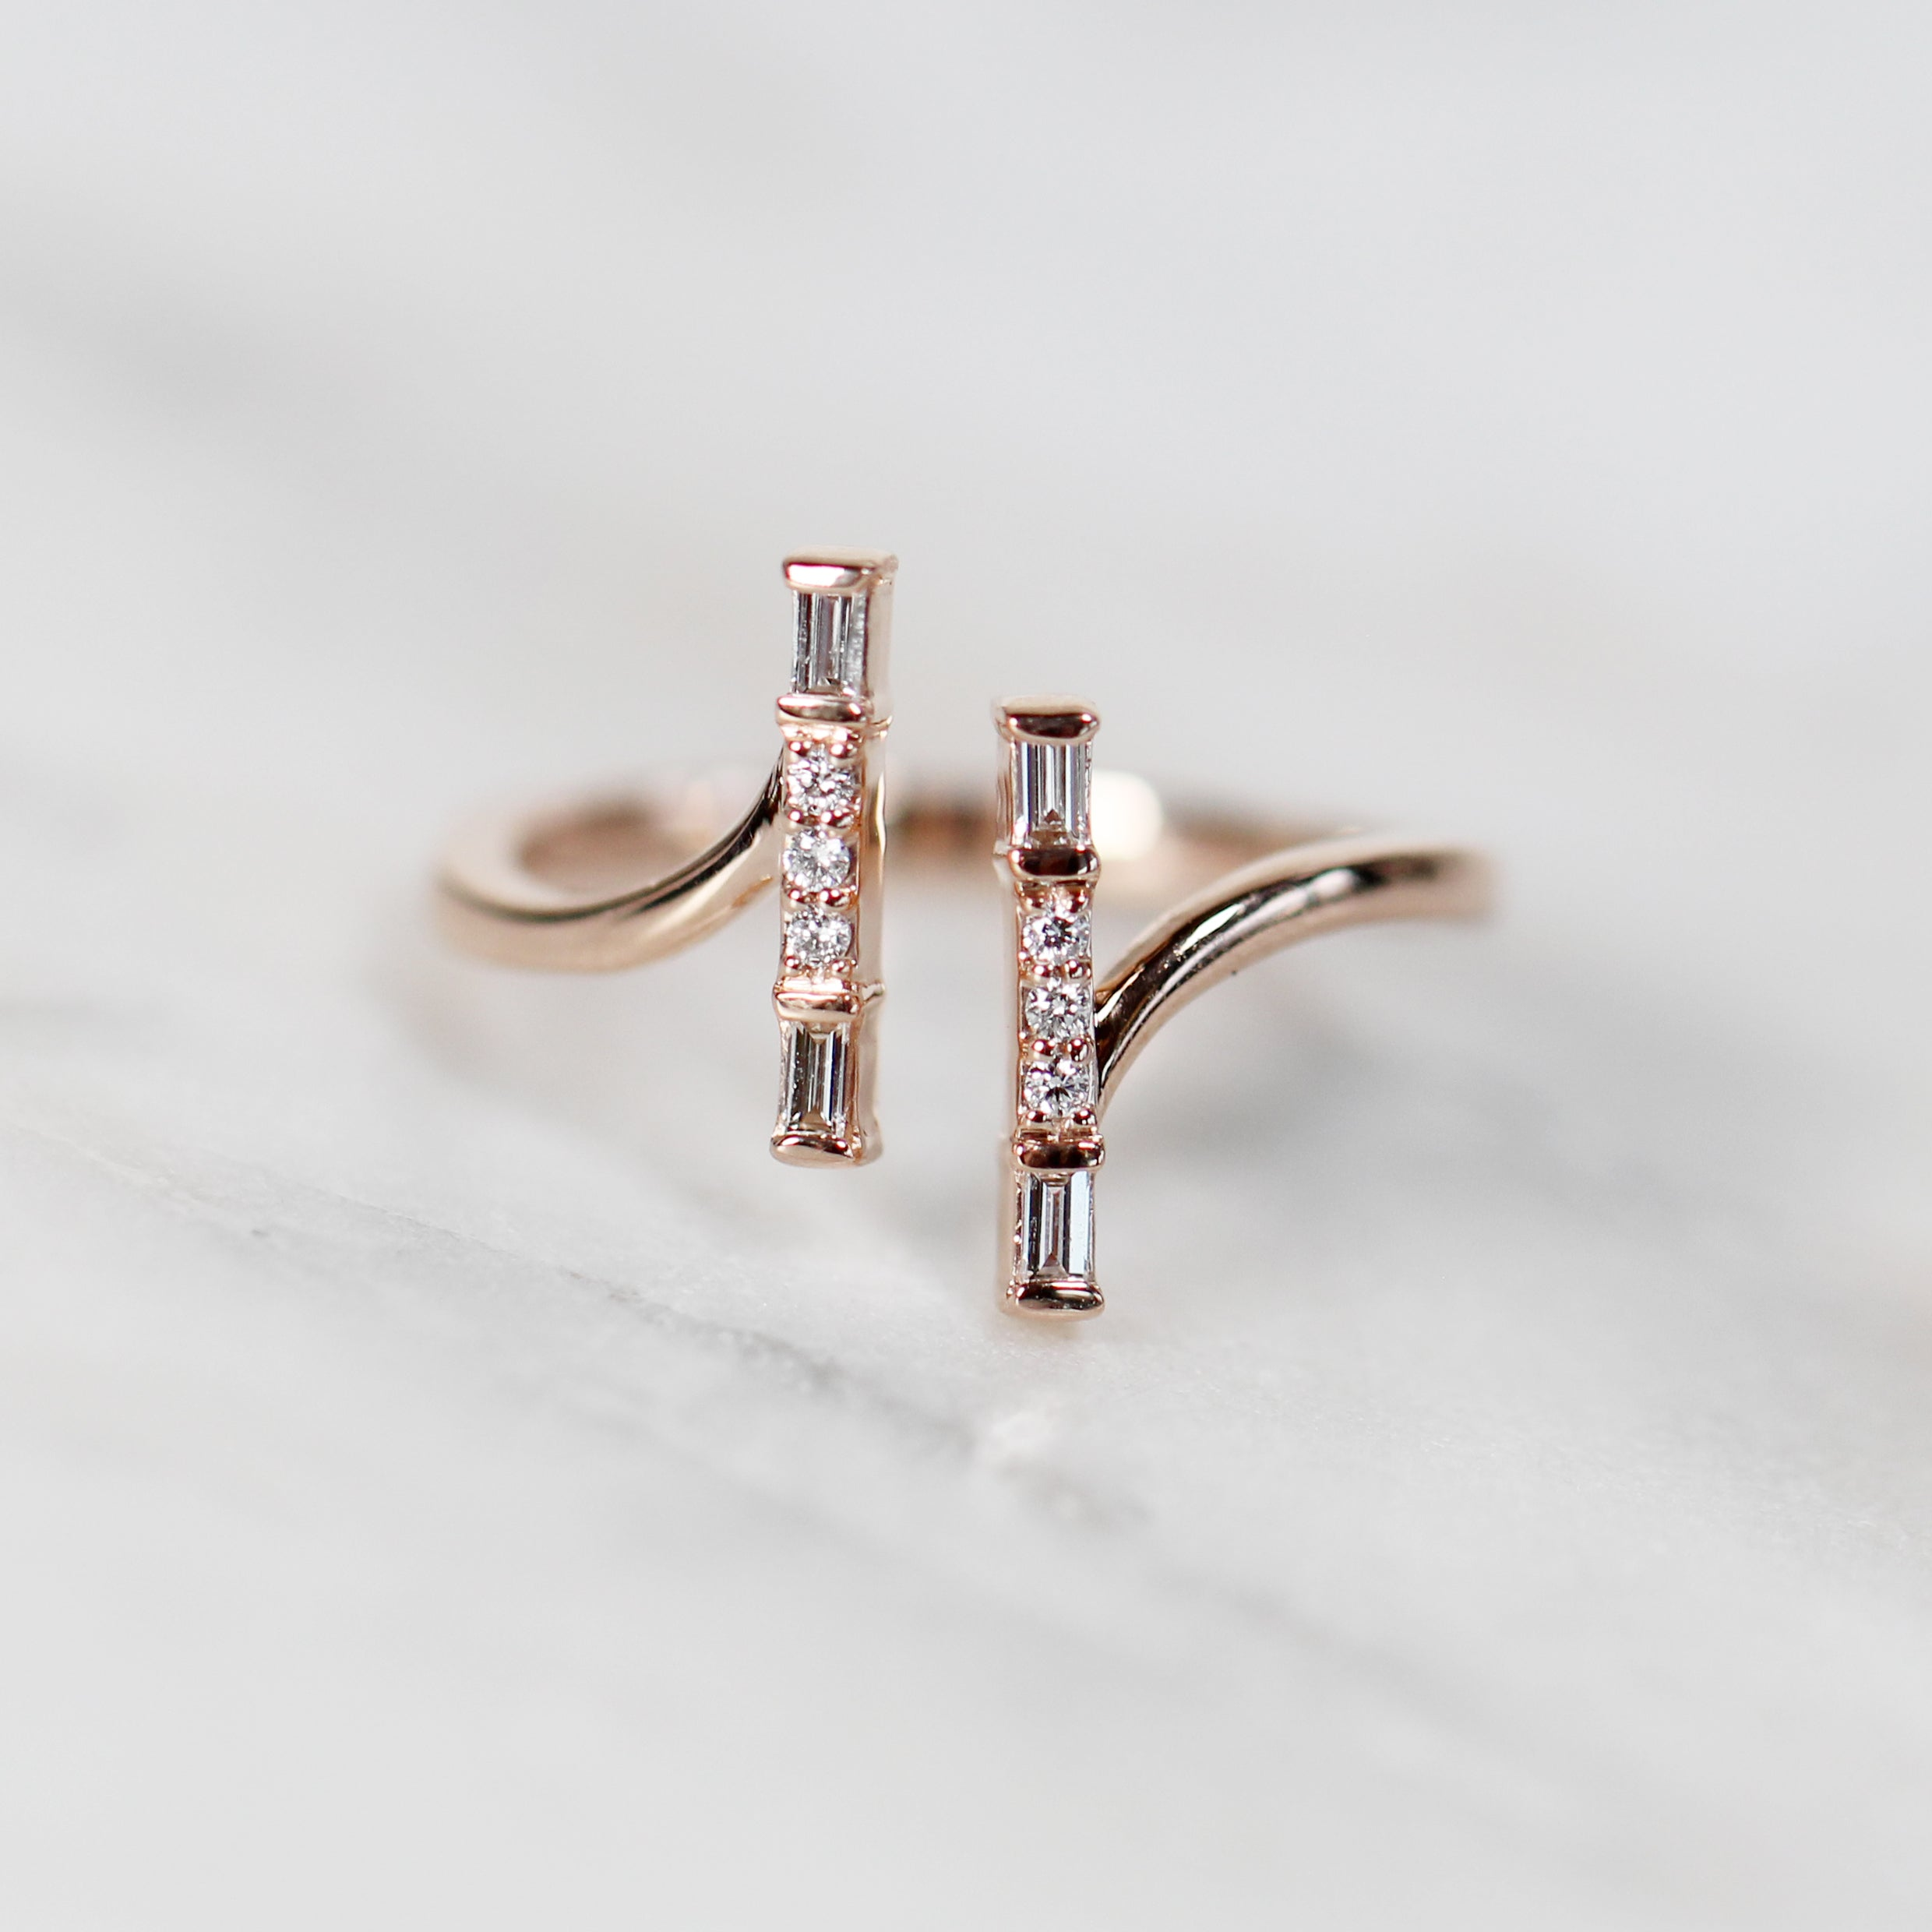 Denver Double Bar Ring - Your Choice of 14k Gold - Salt & Pepper Celestial Diamond Engagement Rings and Wedding Bands  by Midwinter Co.